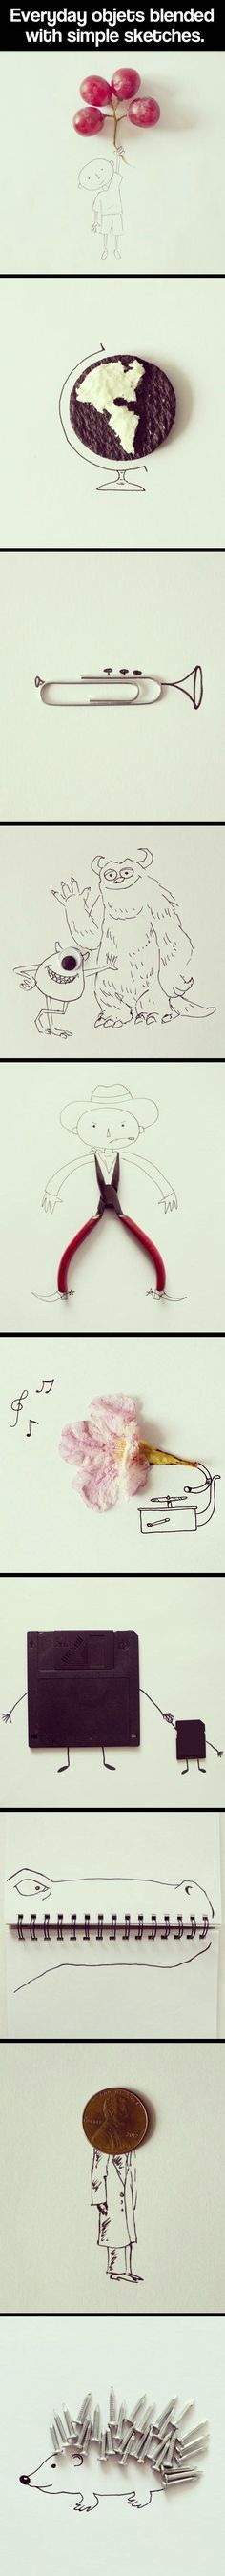 Everyday objects blended with simple sketches. These might be a little complex for little ones - but you get the idea.